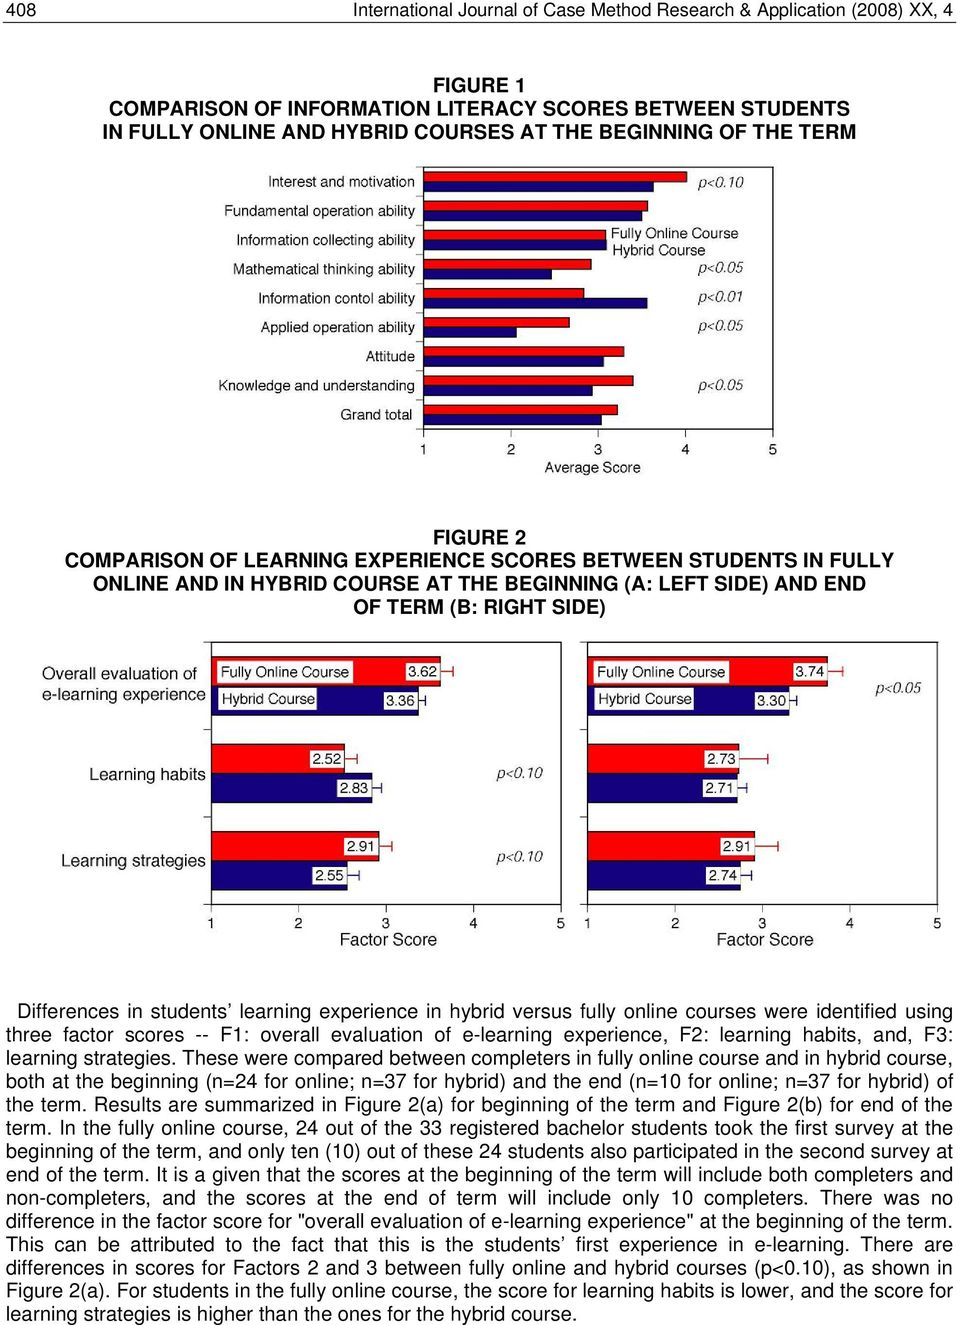 students learning experience in hybrid versus fully online courses were identified using three factor scores -- F1: overall evaluation of e-learning experience, F2: learning habits, and, F3: learning